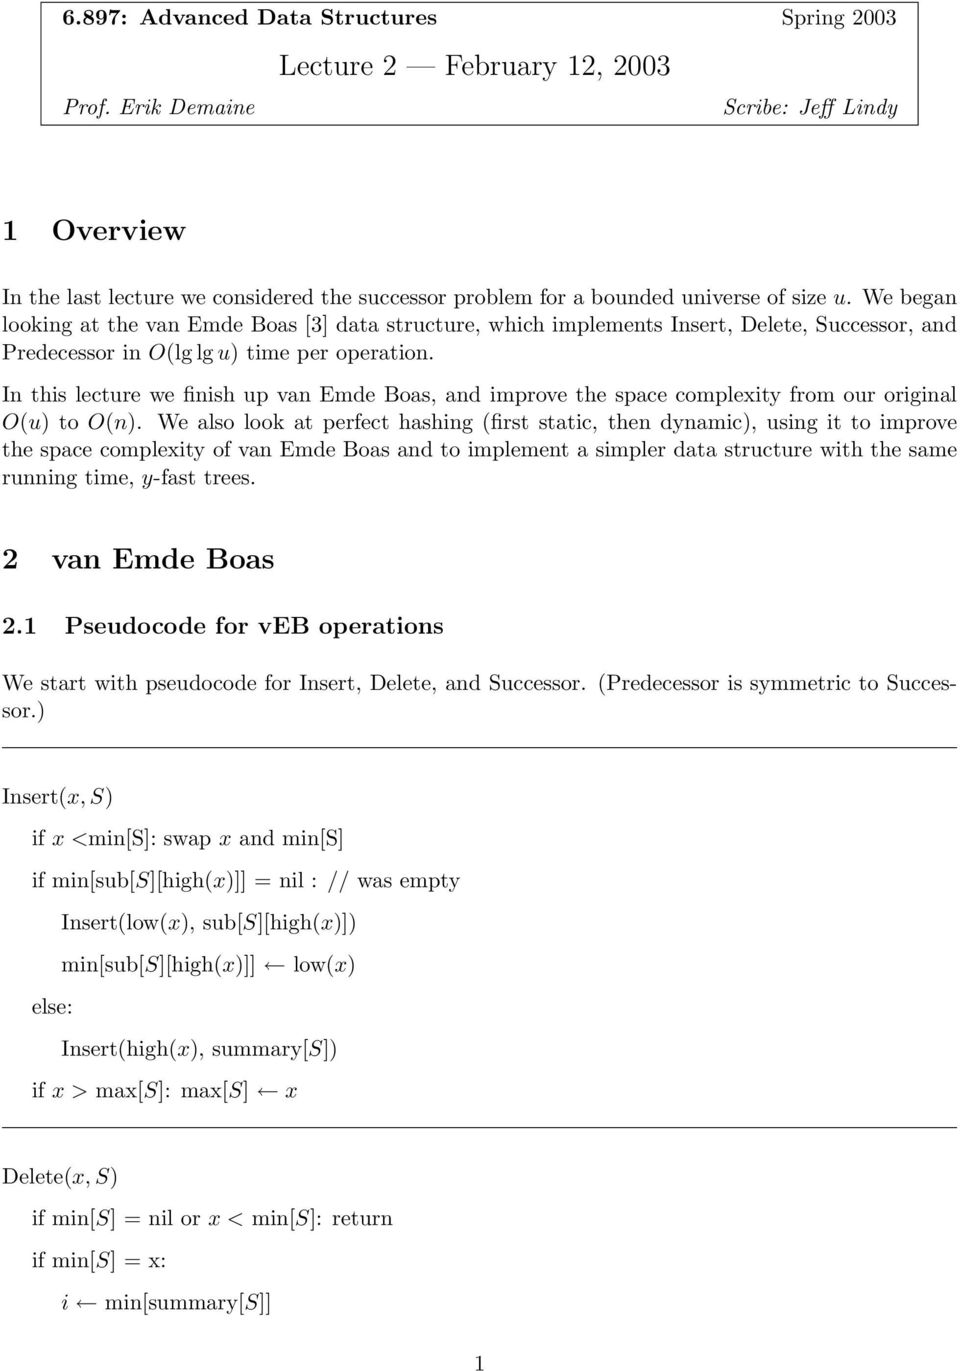 We began looking at the van Emde Boas [3] data structure, which implements Insert, Delete, Successor, and Predecessor in O(lg ) time per operation.